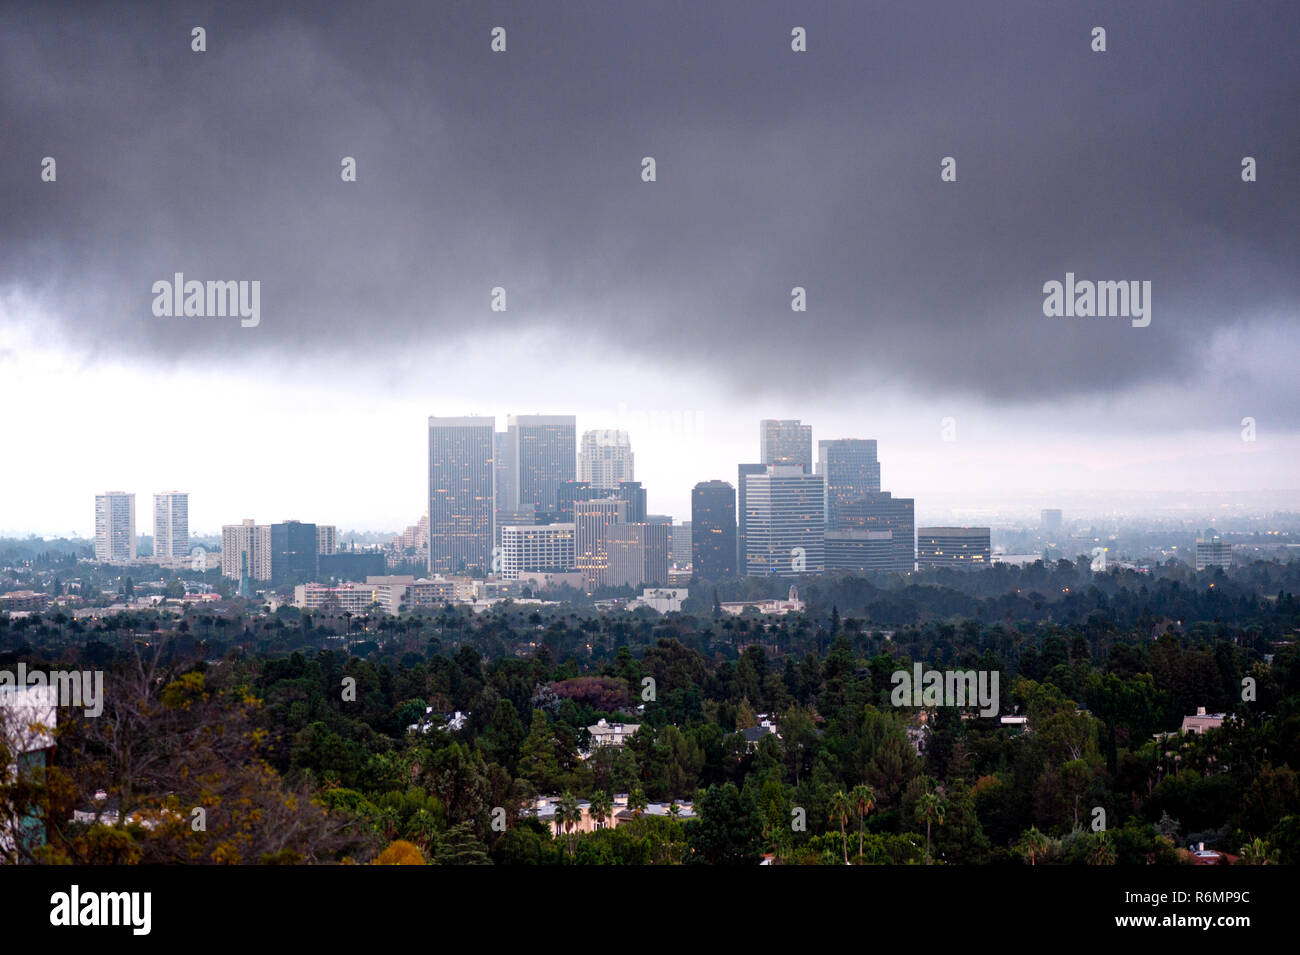 century city on a cloudy day - Stock Image